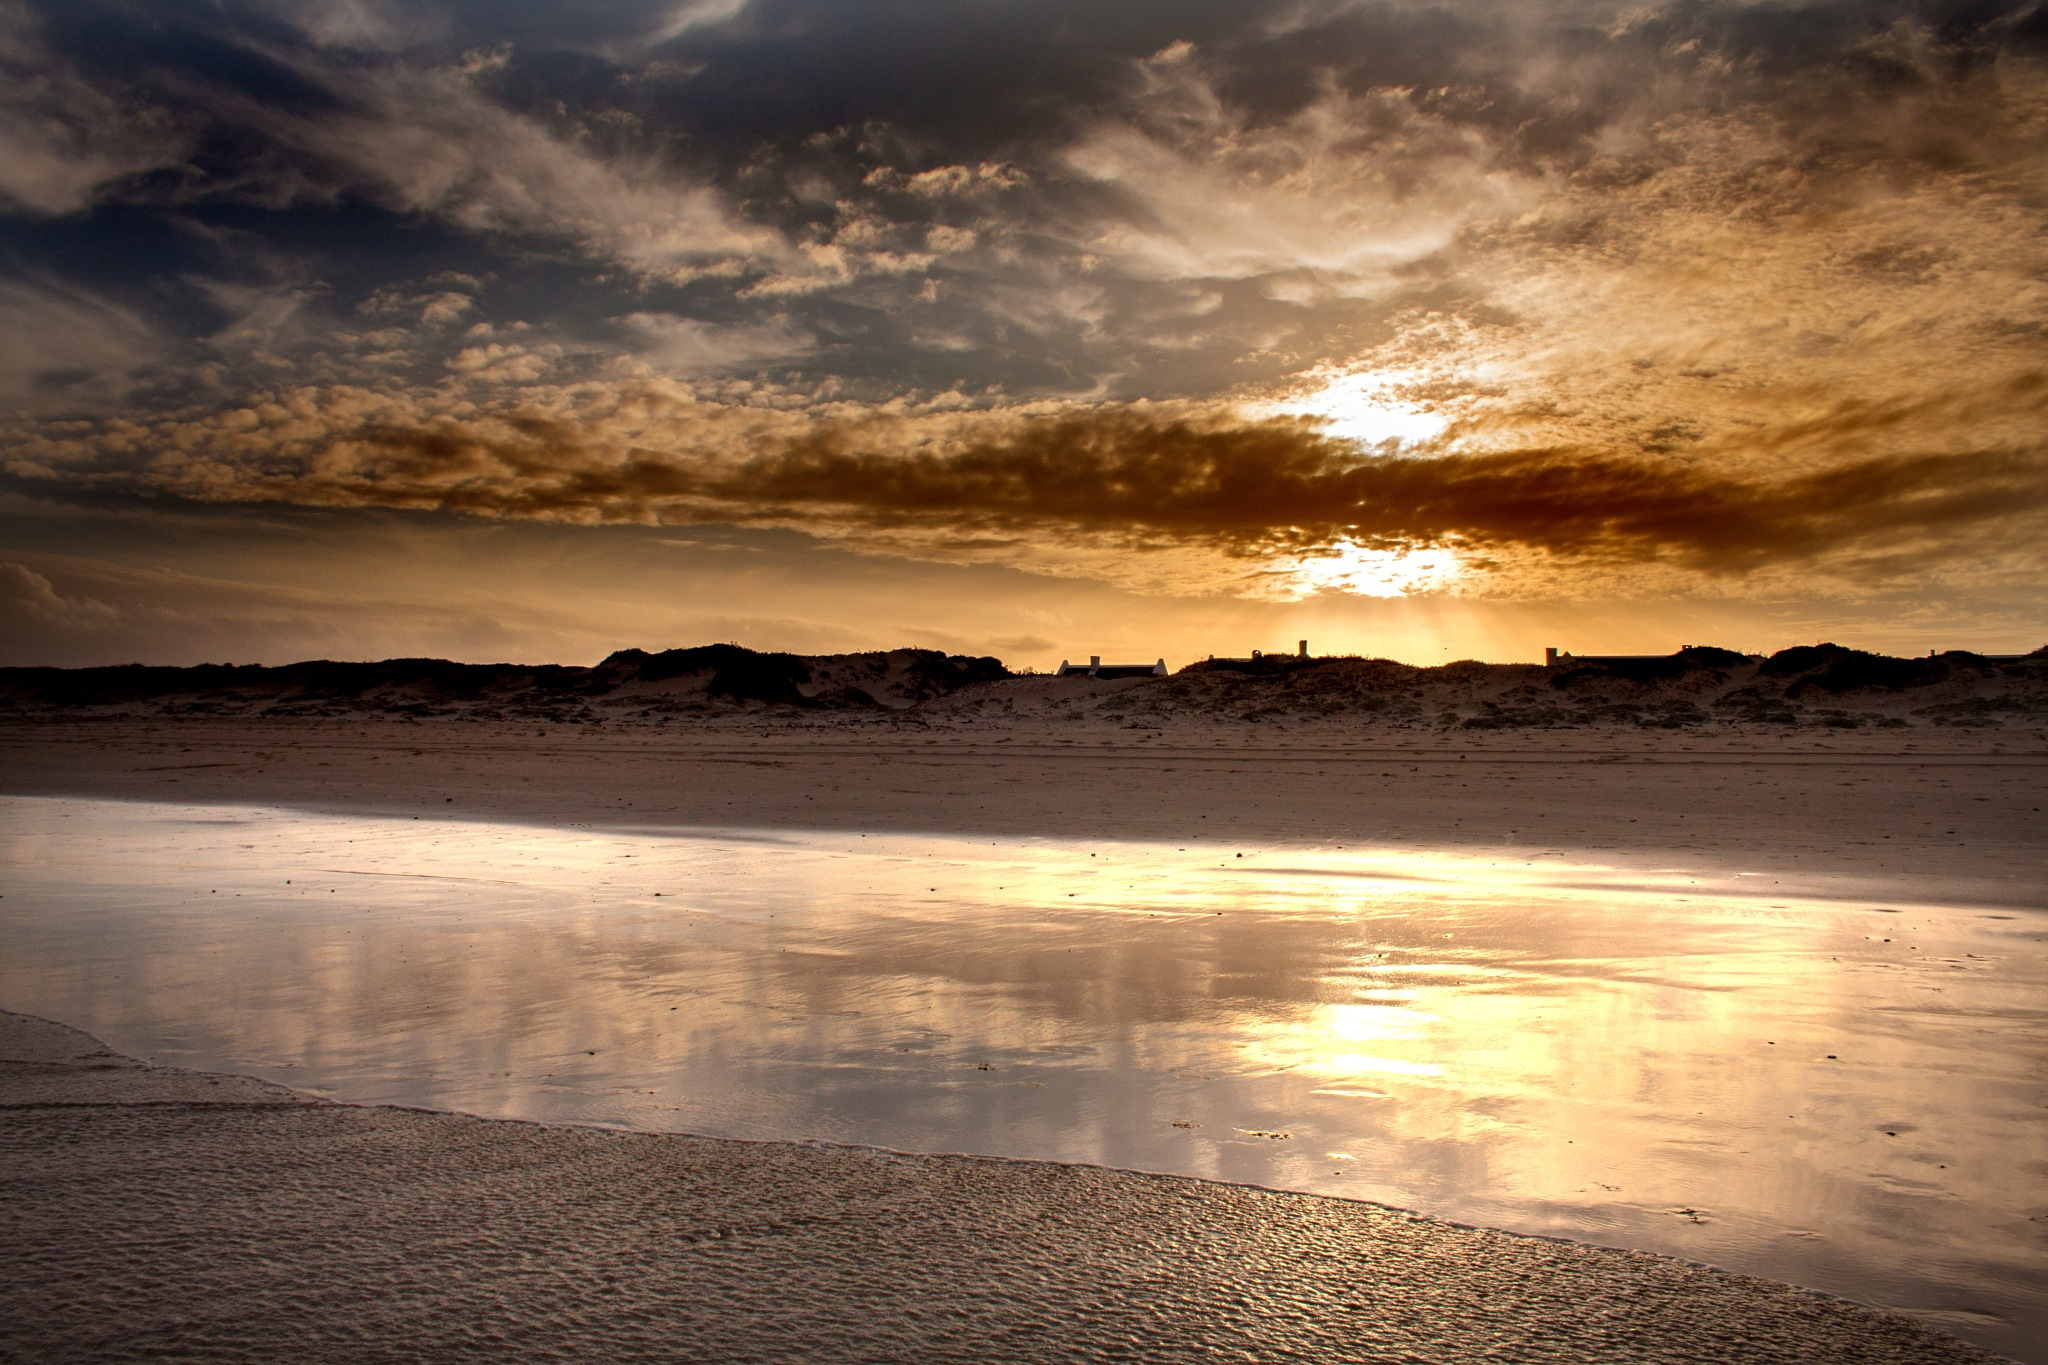 A river on the beach by Nauta Piscatorque